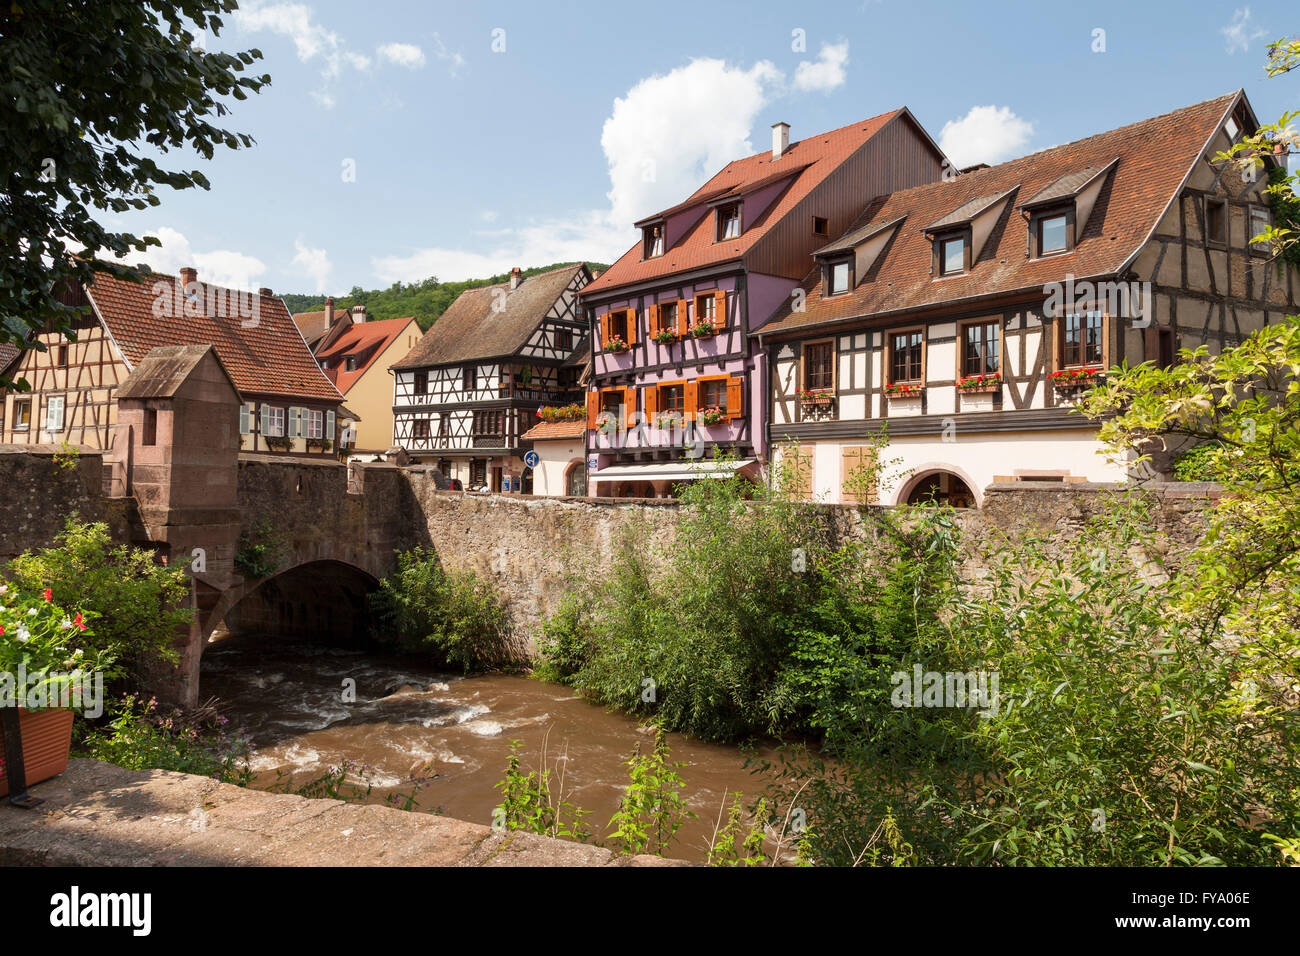 Half-timbered houses on the river Weiss, Kaysersberg, Alsace, France - Stock Image